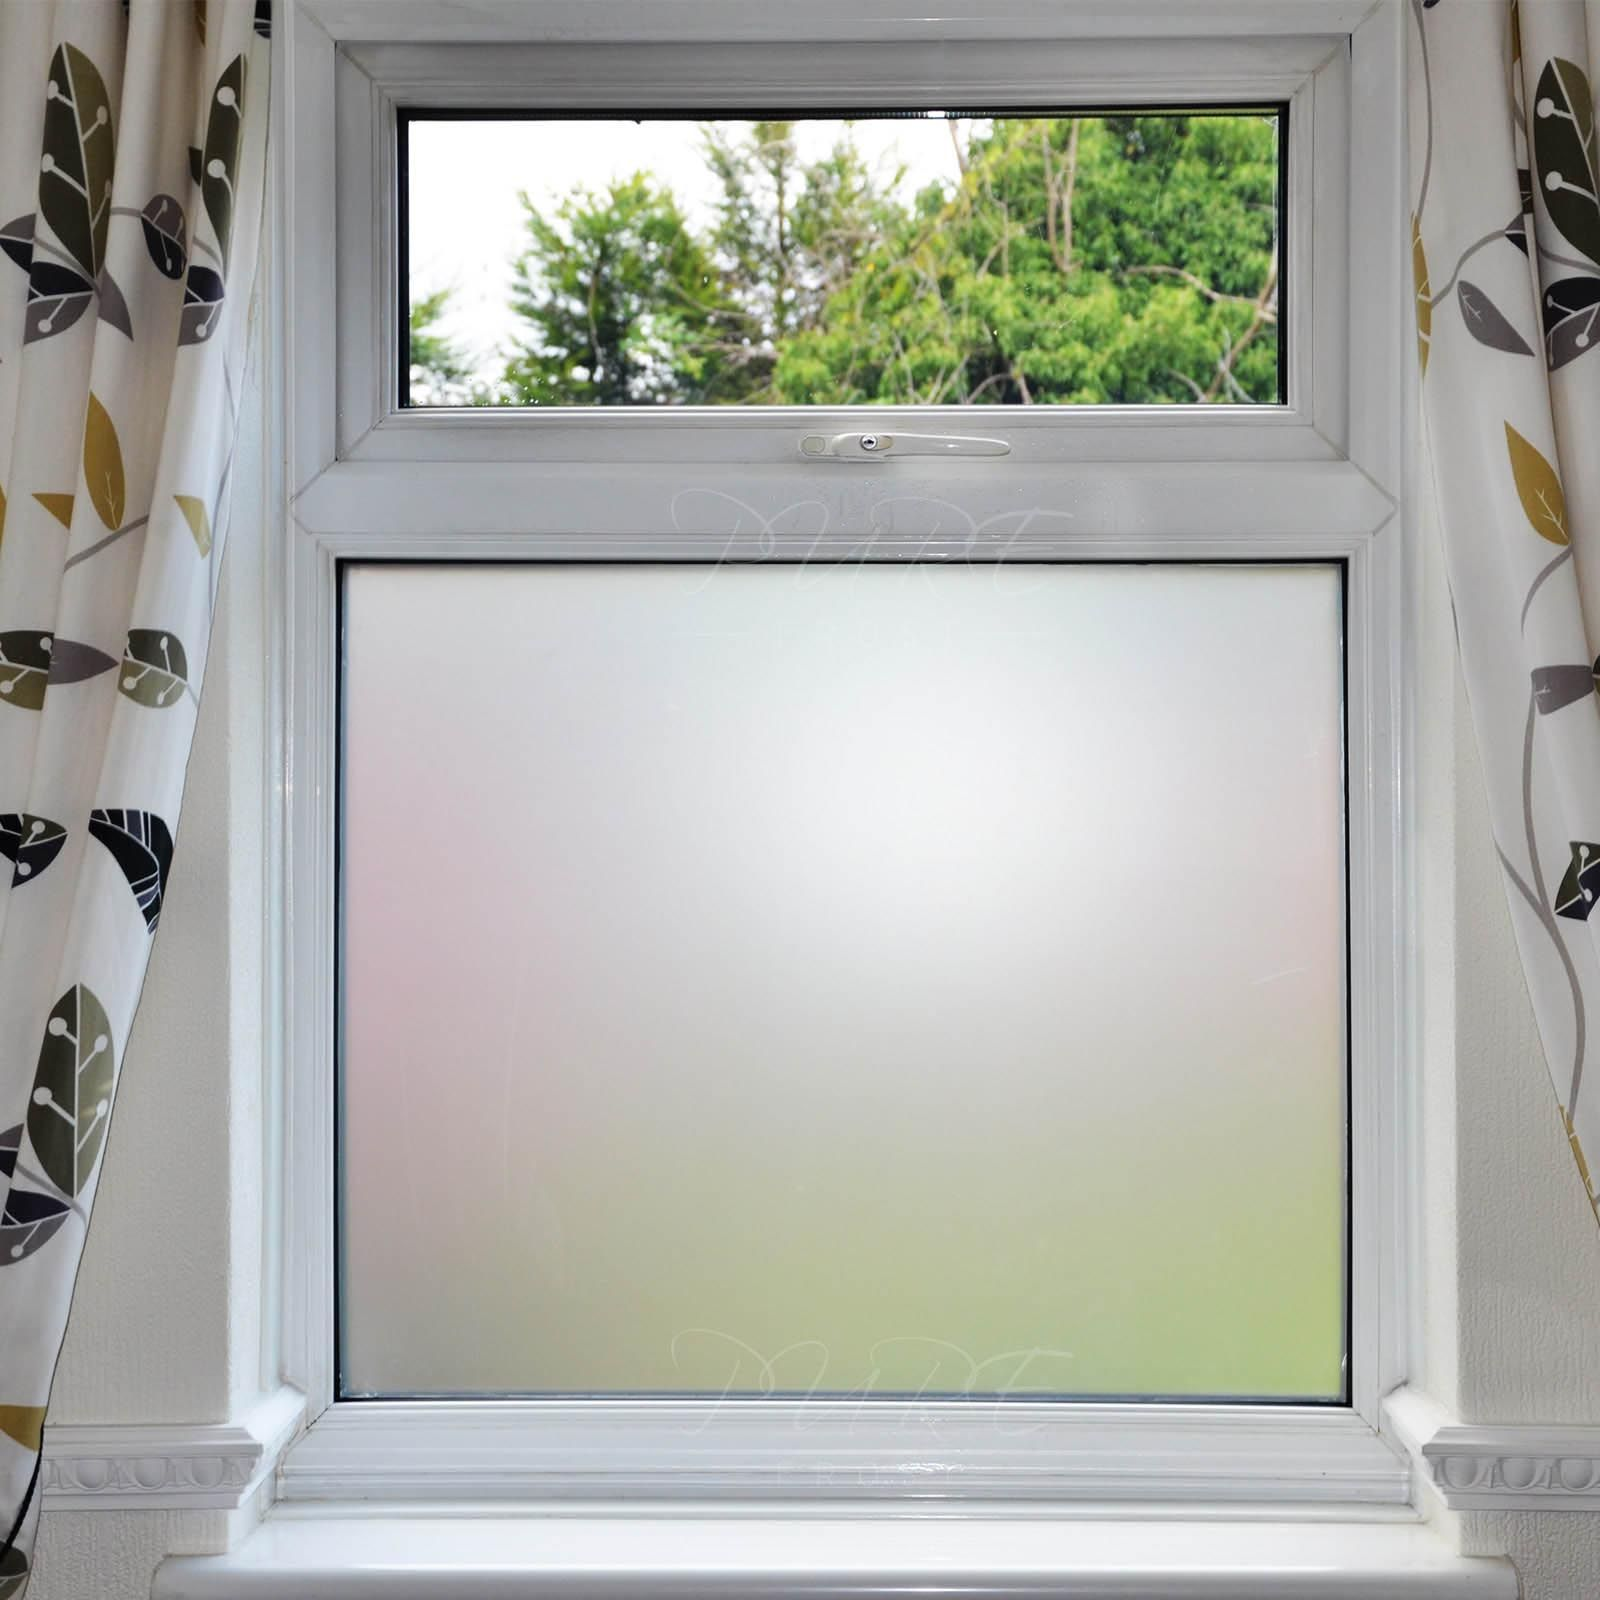 Bathroom Frosted Window Film With Images Frosted Window Film